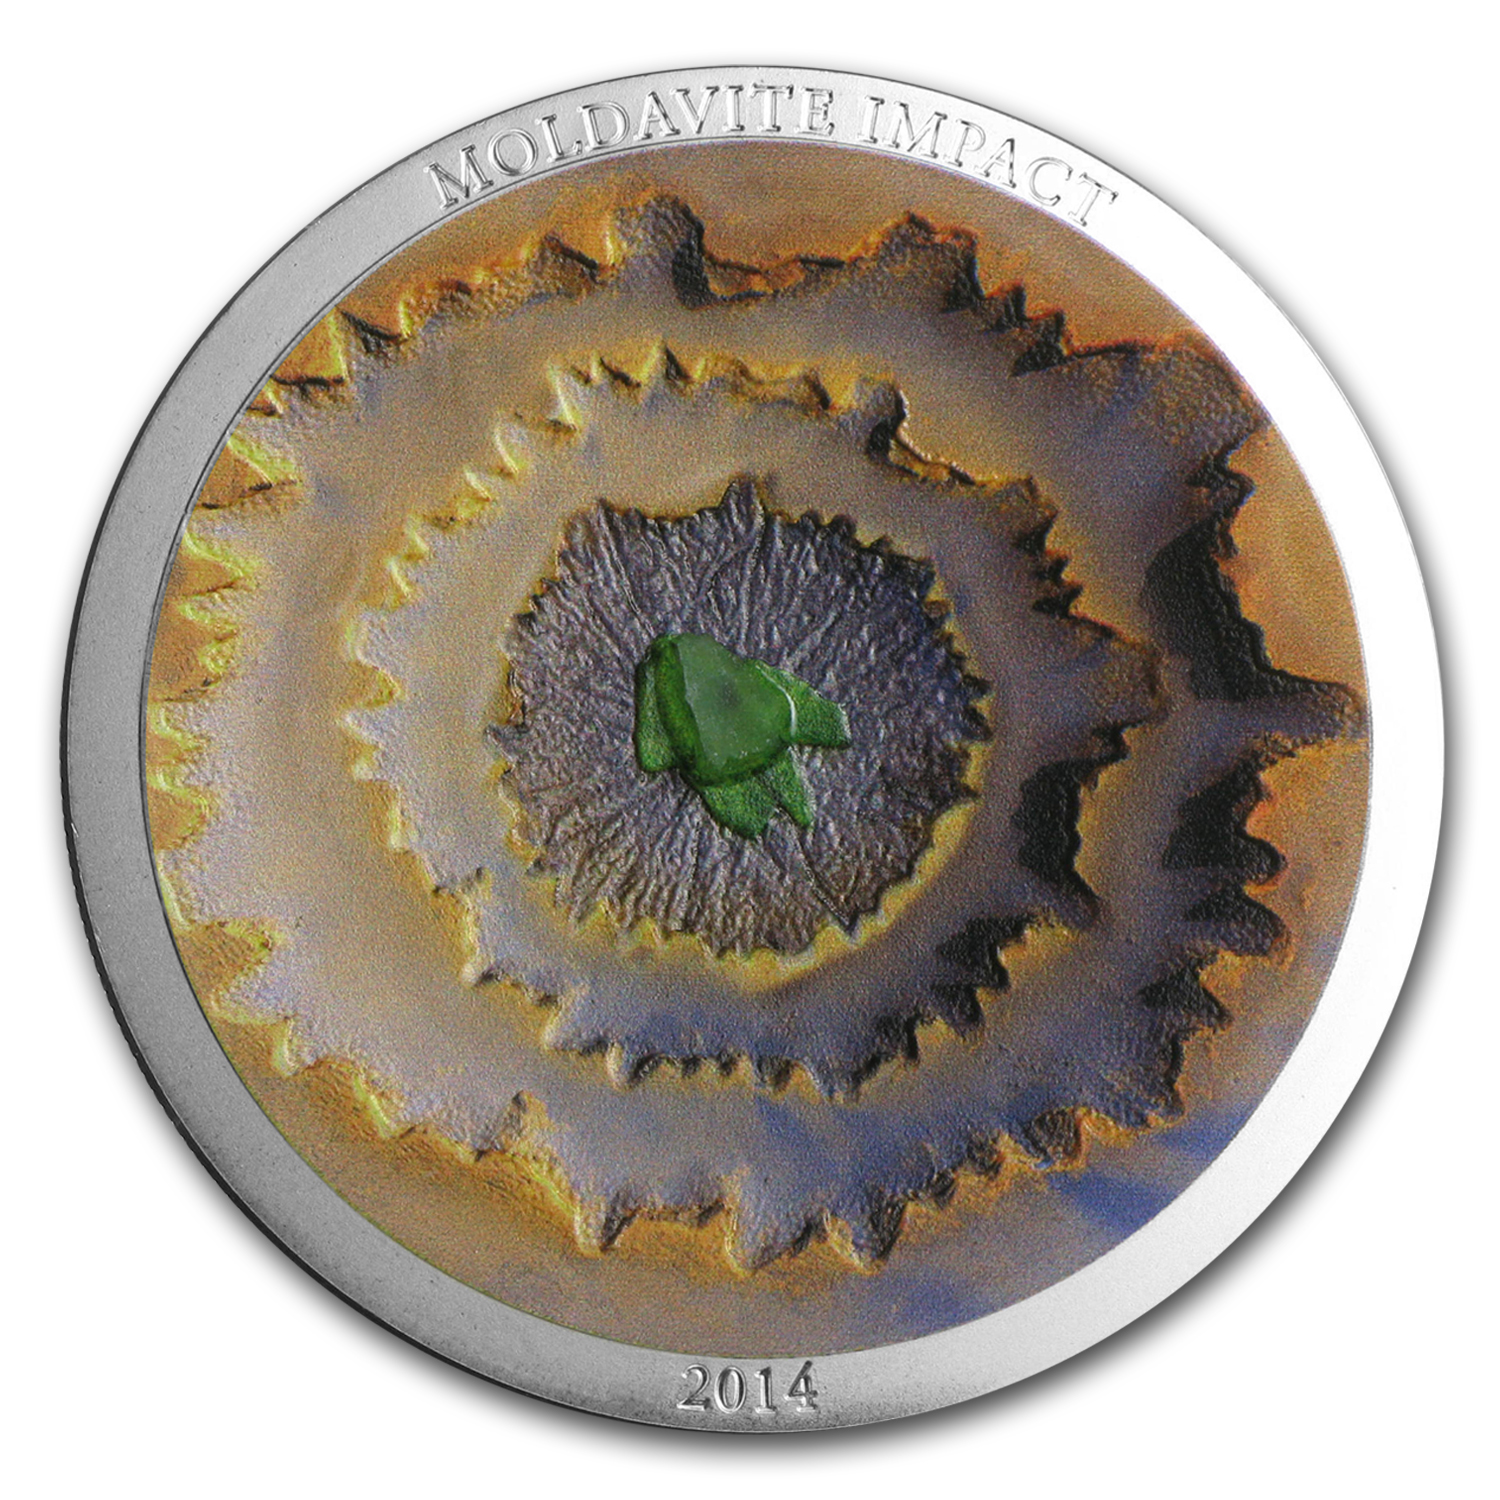 2014 Cook Islands 1 oz Proof Silver $5 Moldavite Impact